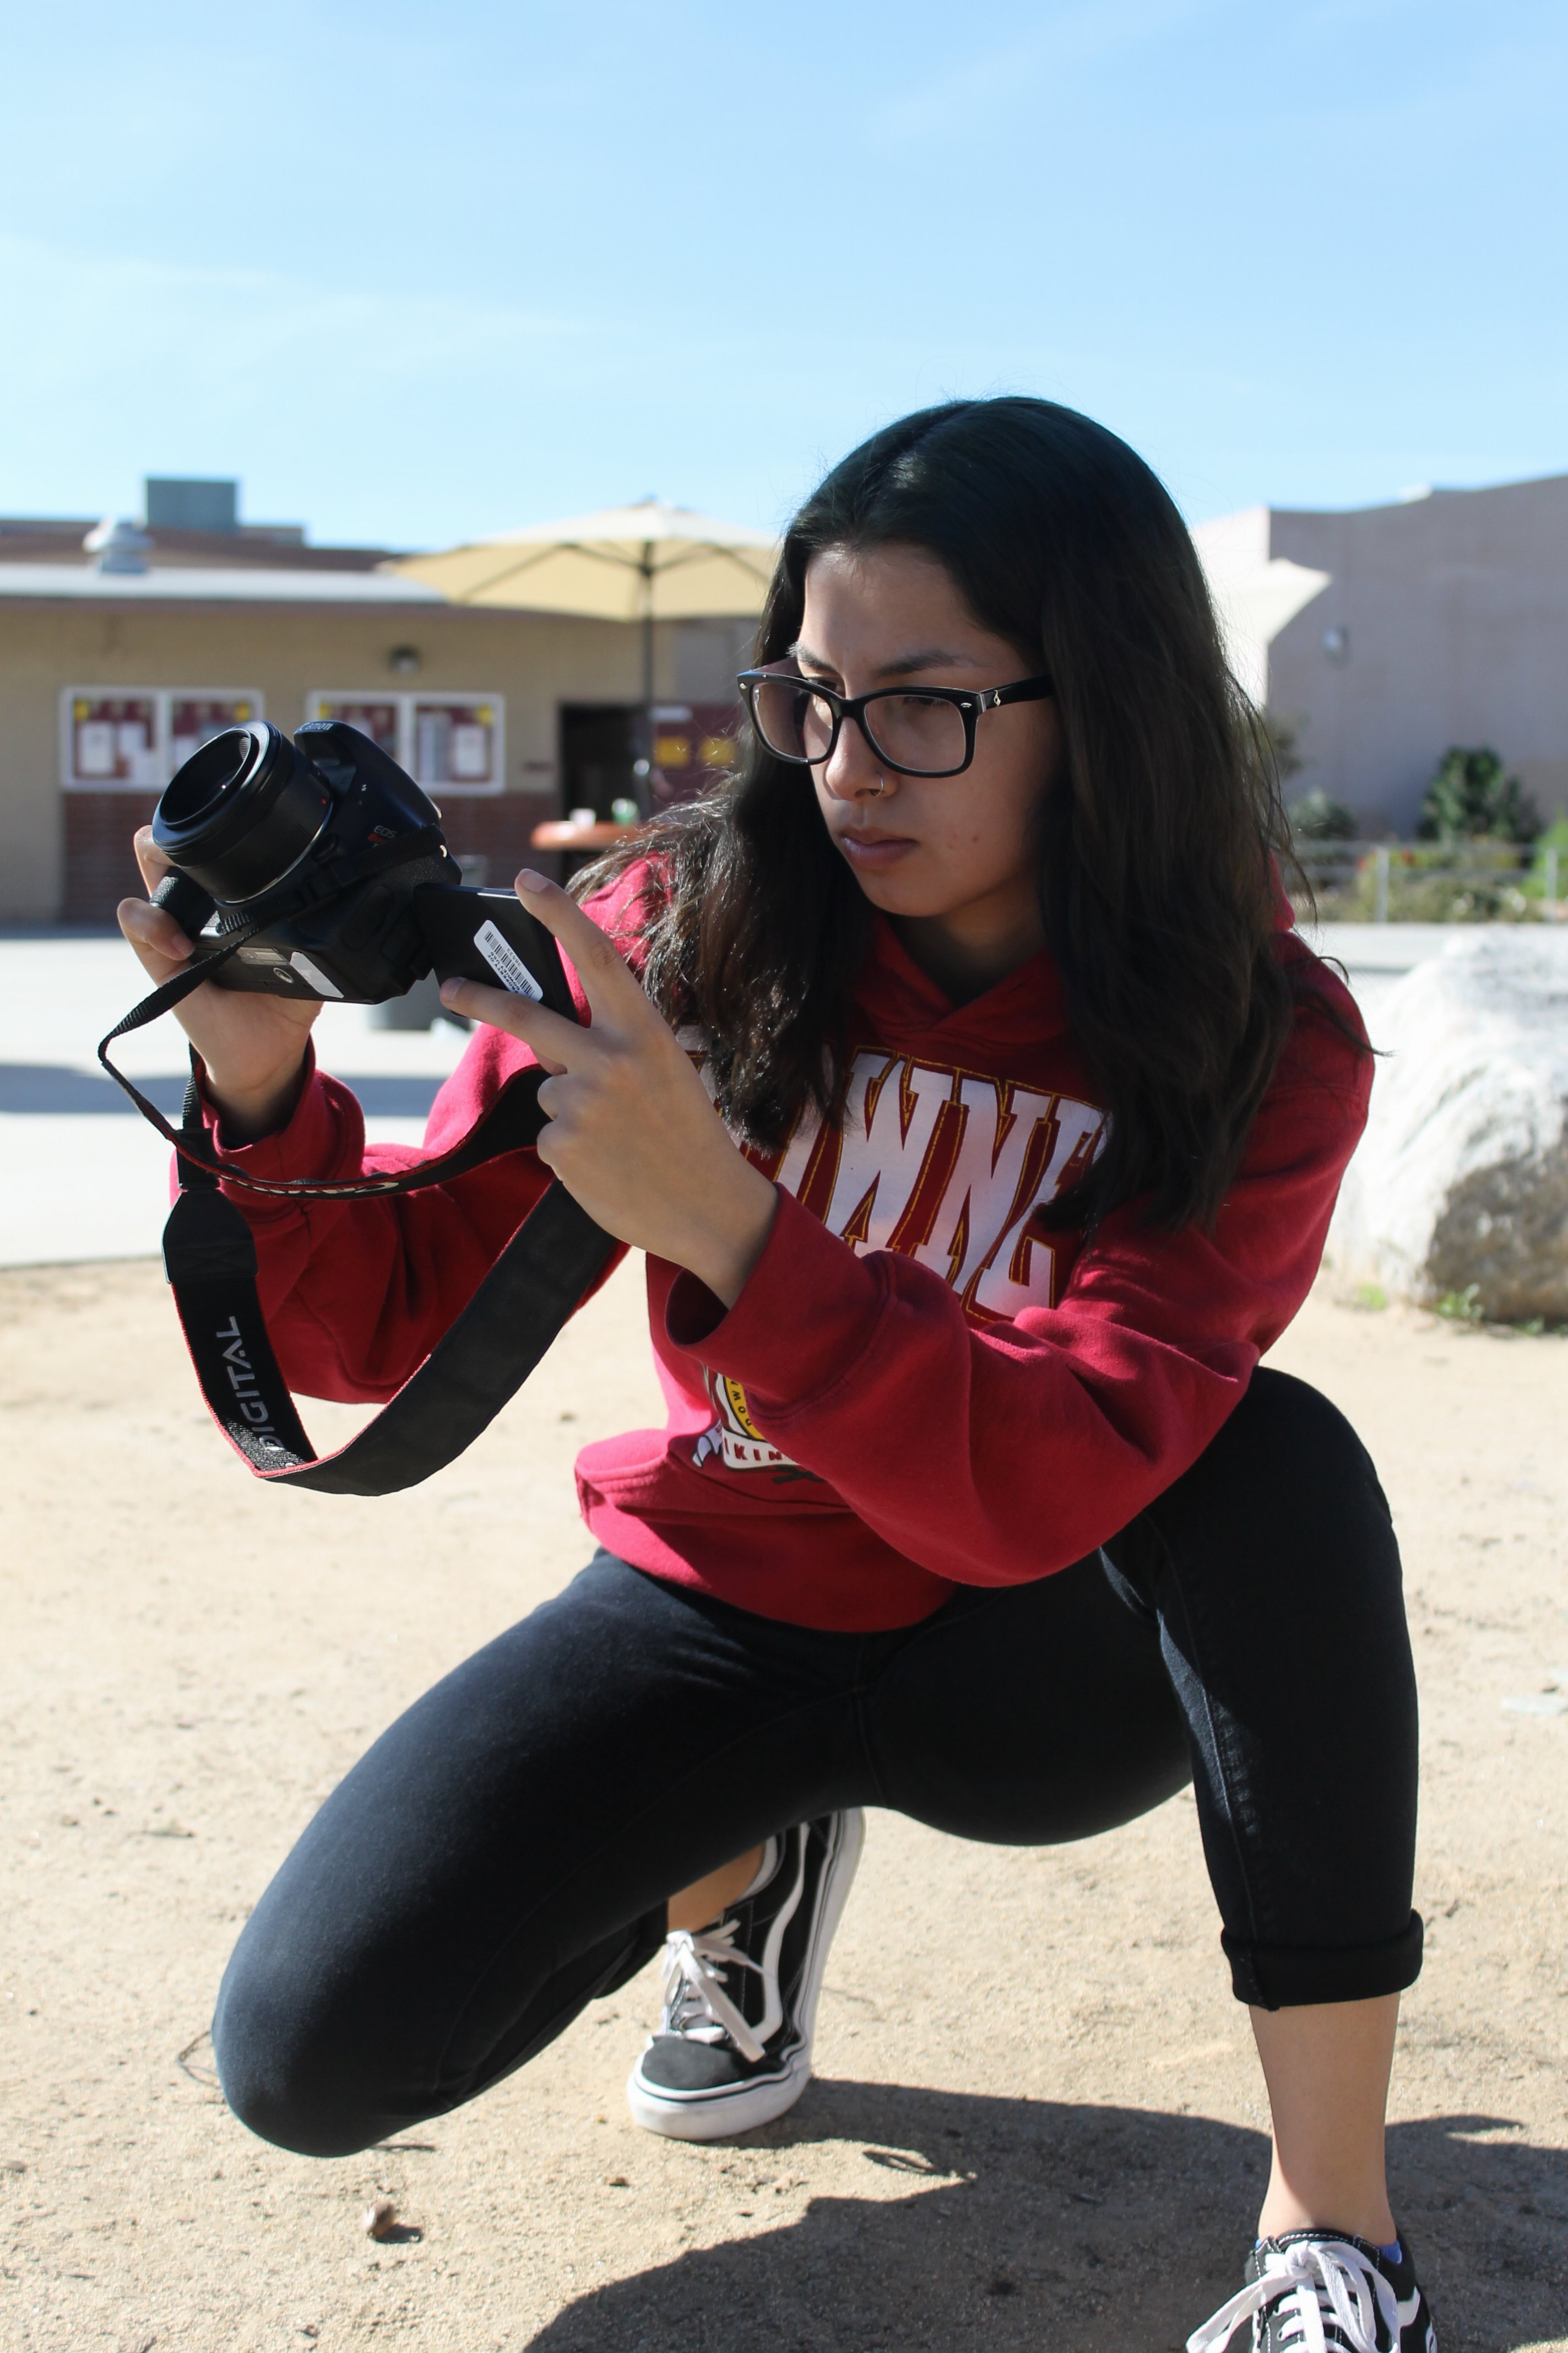 filmstudents_pena_xenia_72_2_a